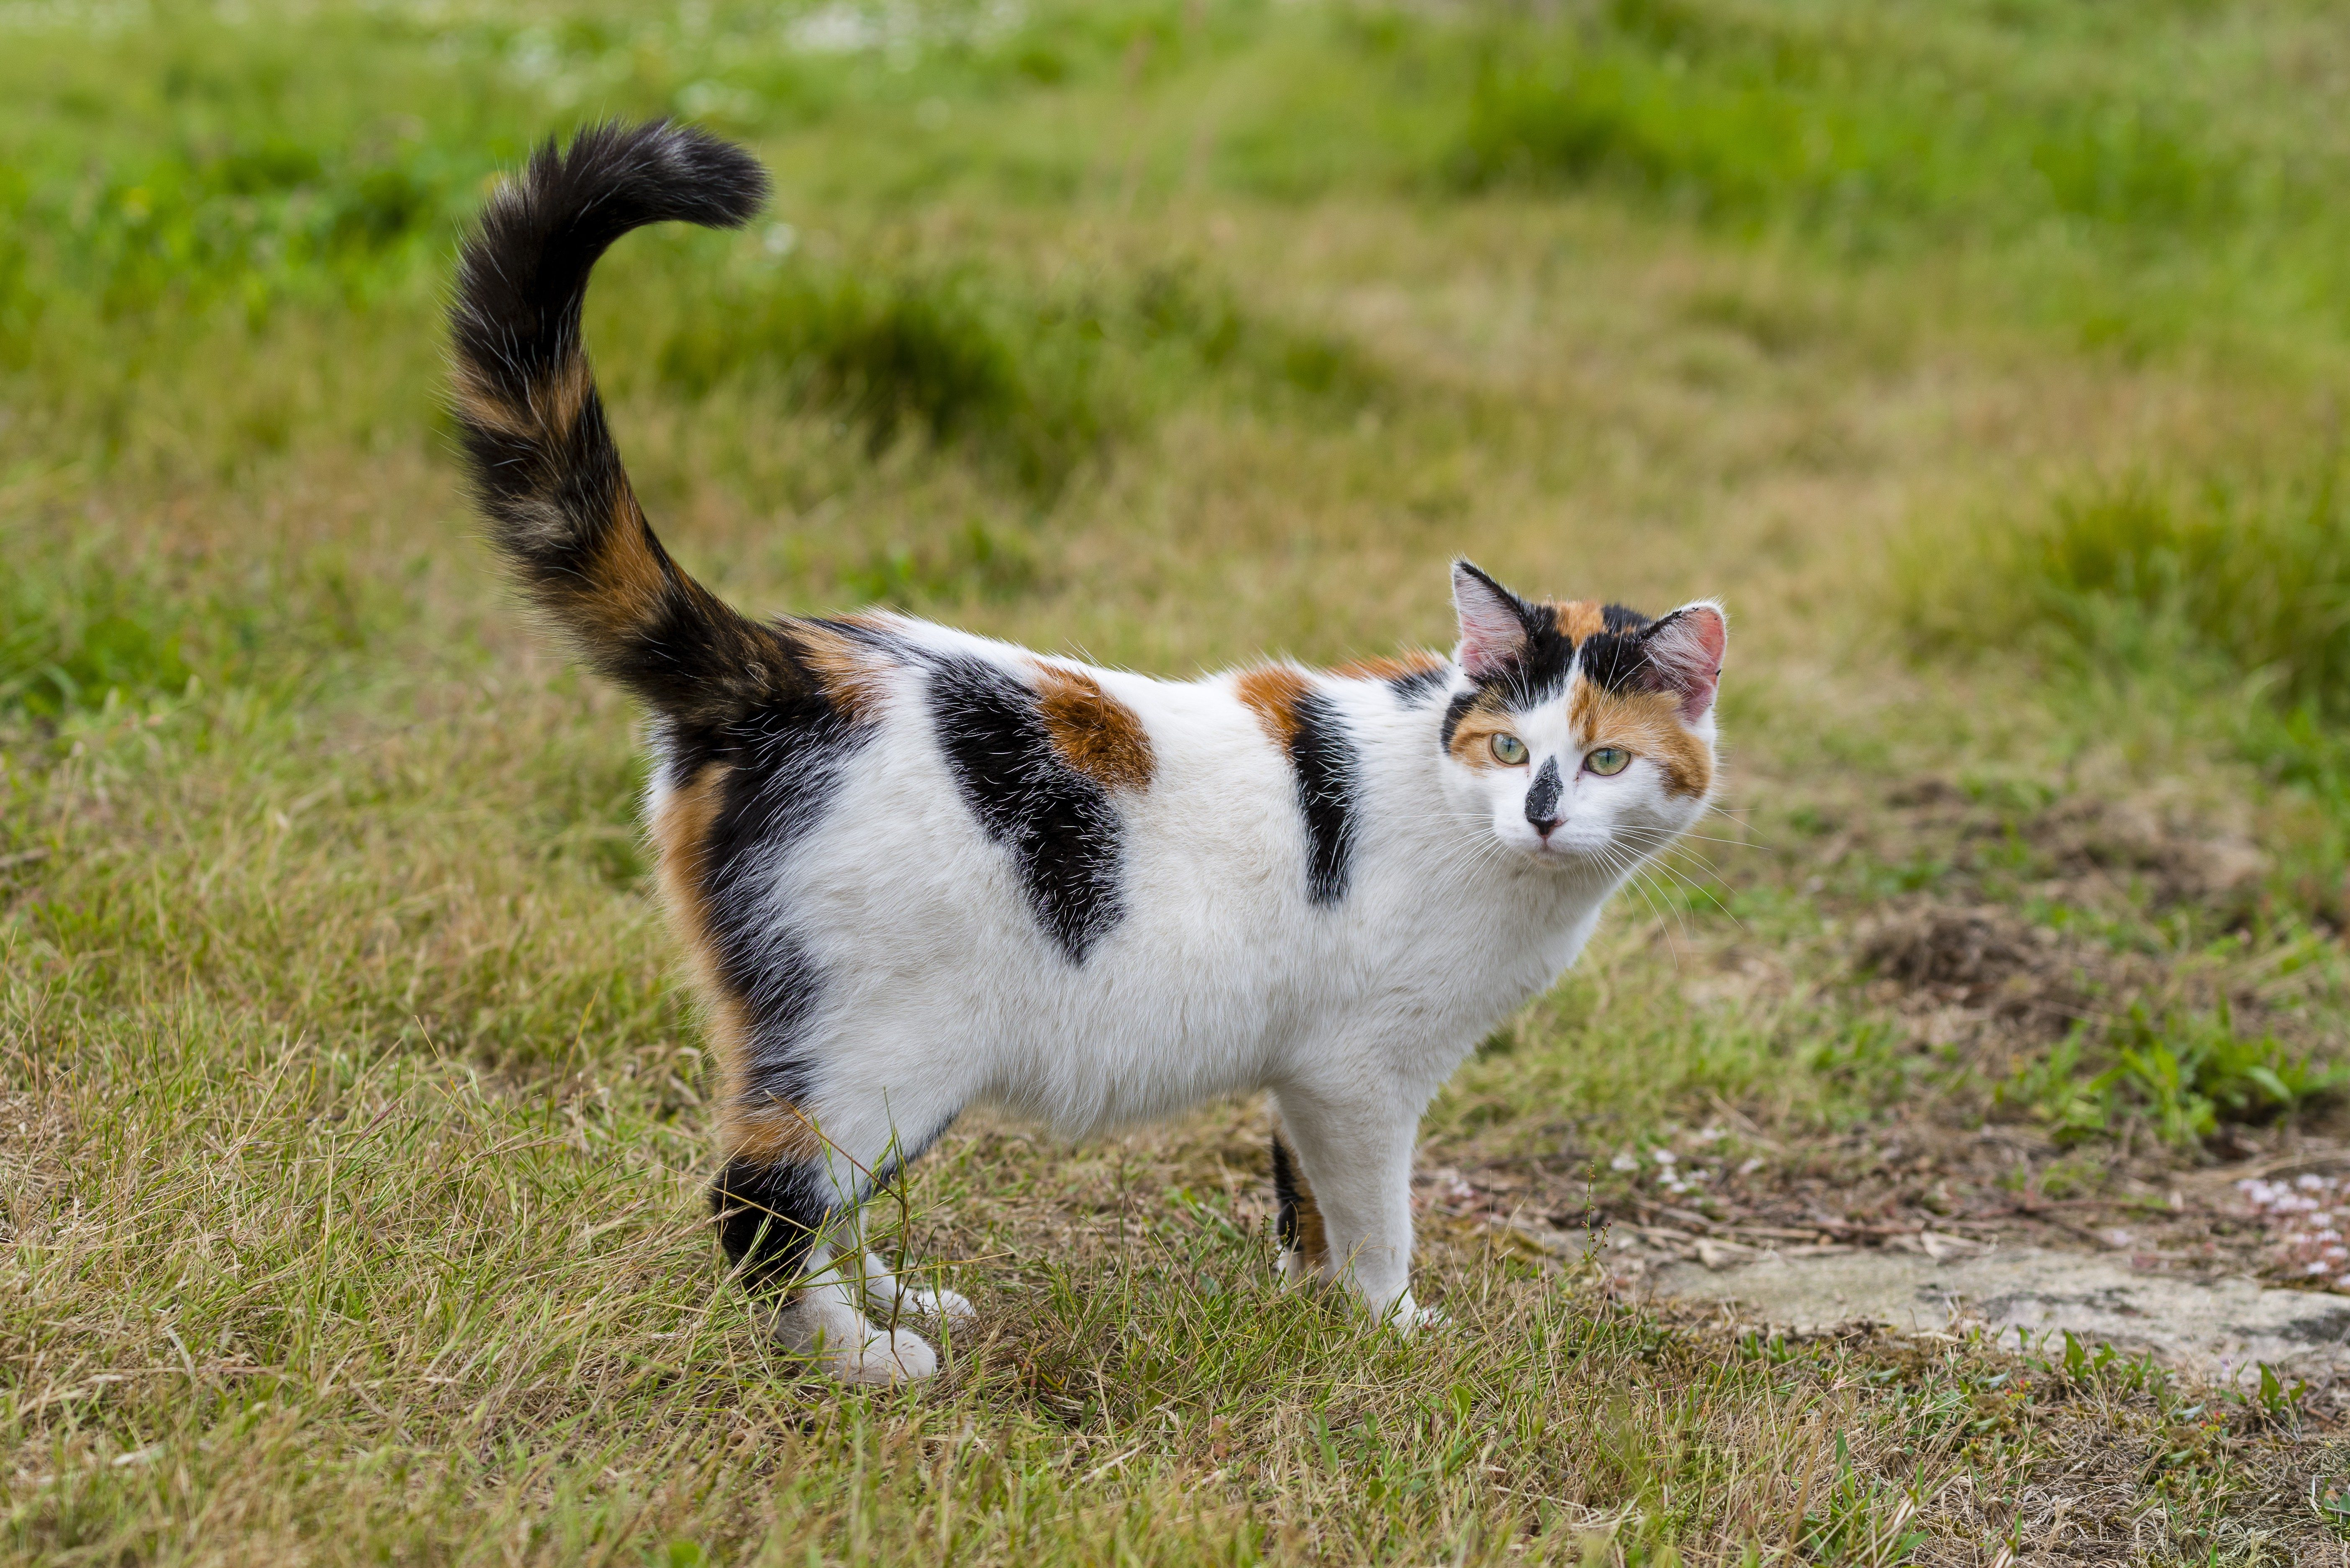 One cute mixed-breed cat standing on grass with its raised tail. Outdoors portrait of domestic cat in color image